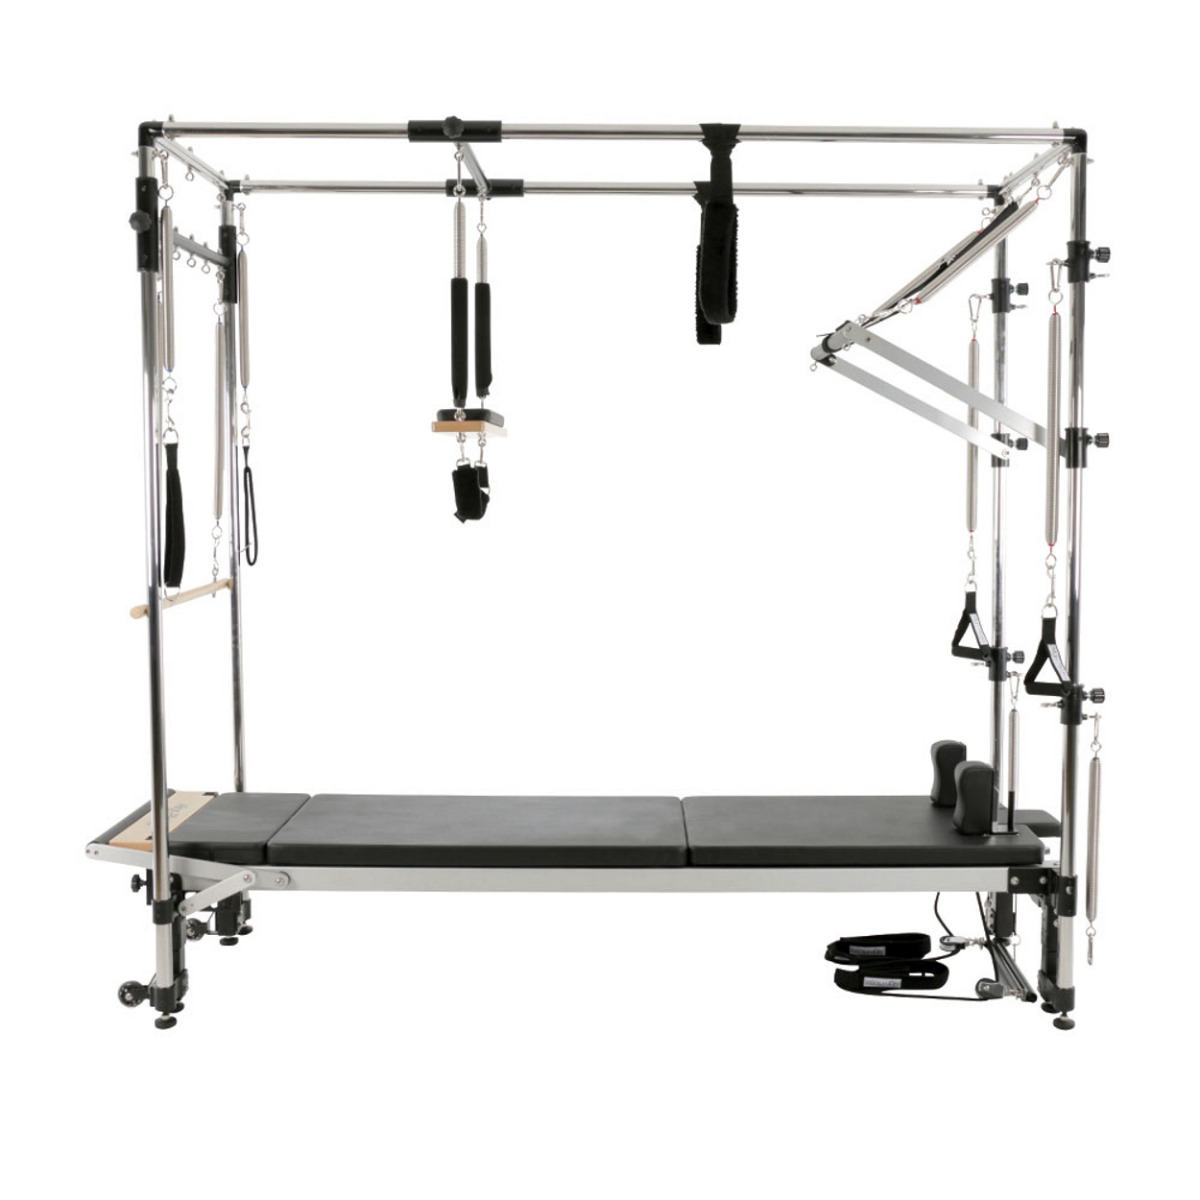 Align-Pilates C2 Pro Reformer & Full Cadillac Combination bundle